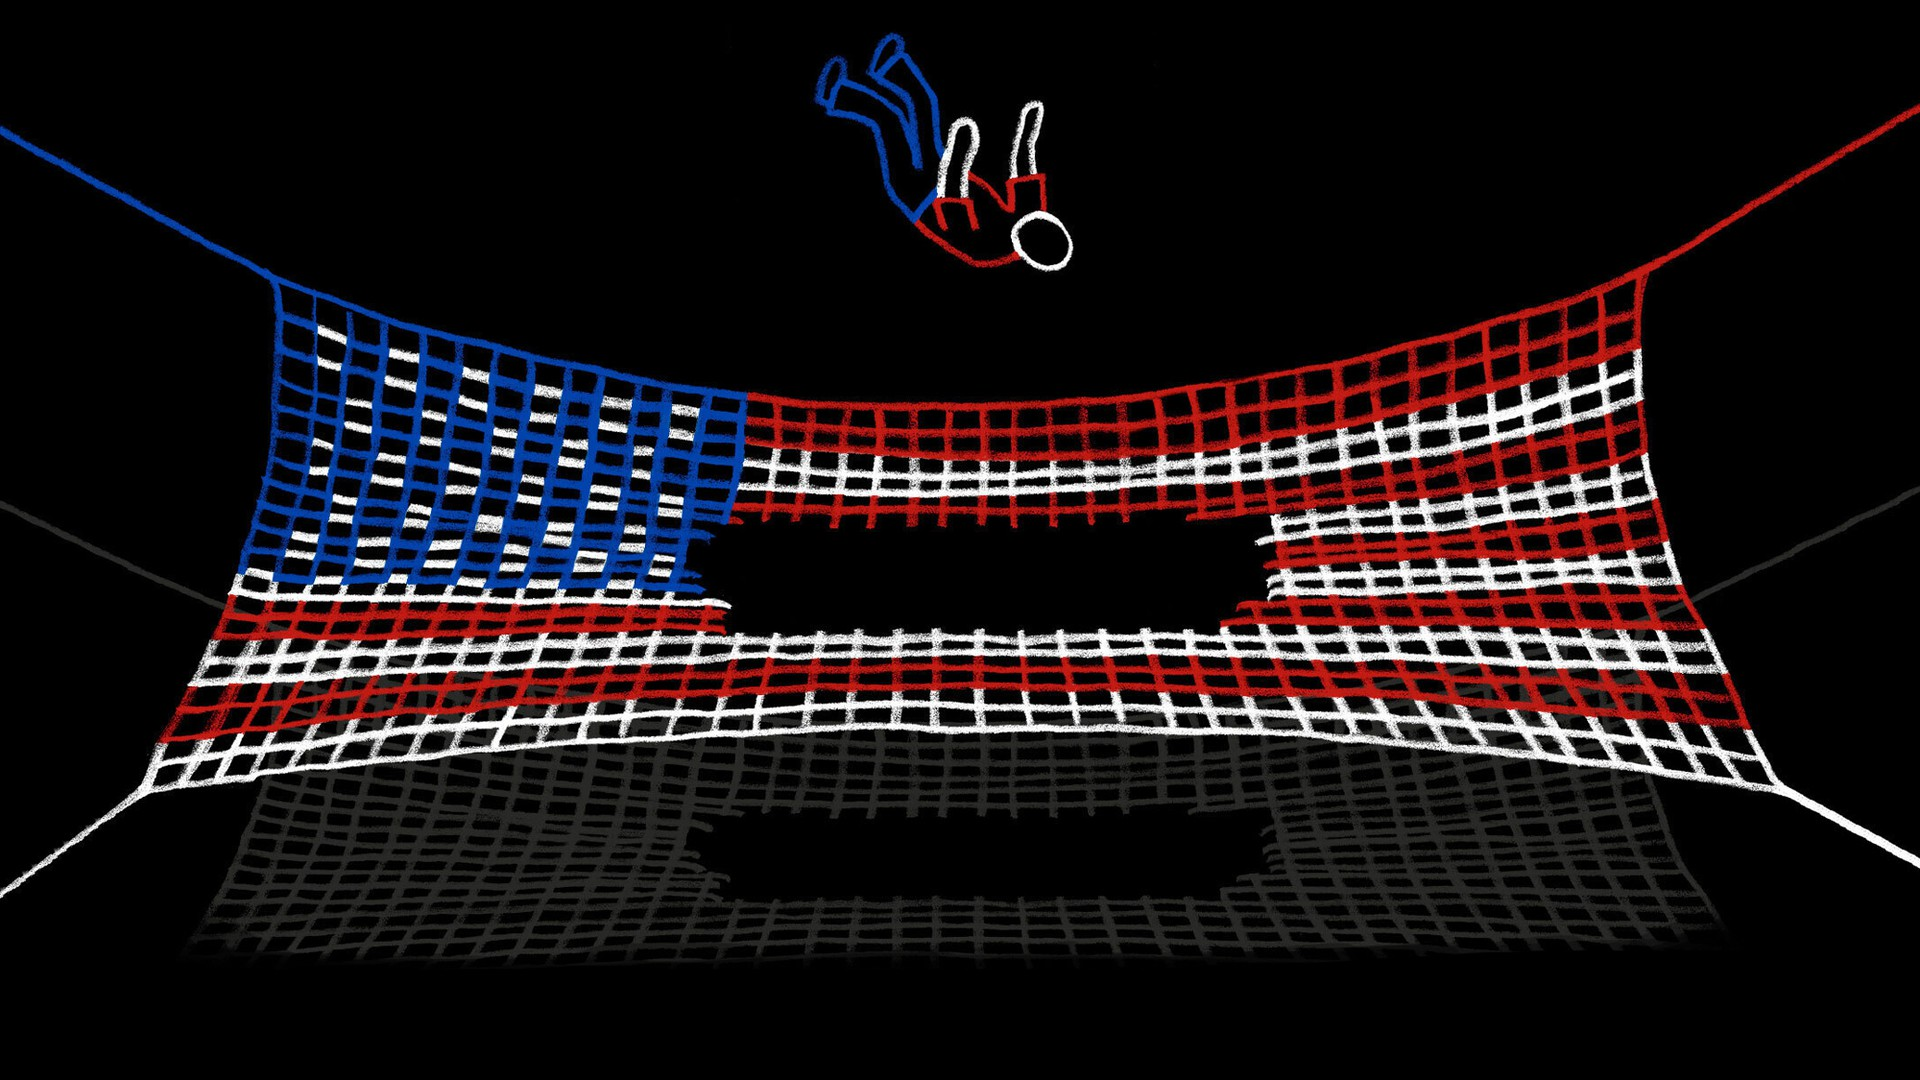 A man falling into a U.S. flag, drawn as a net with a hole in the middle